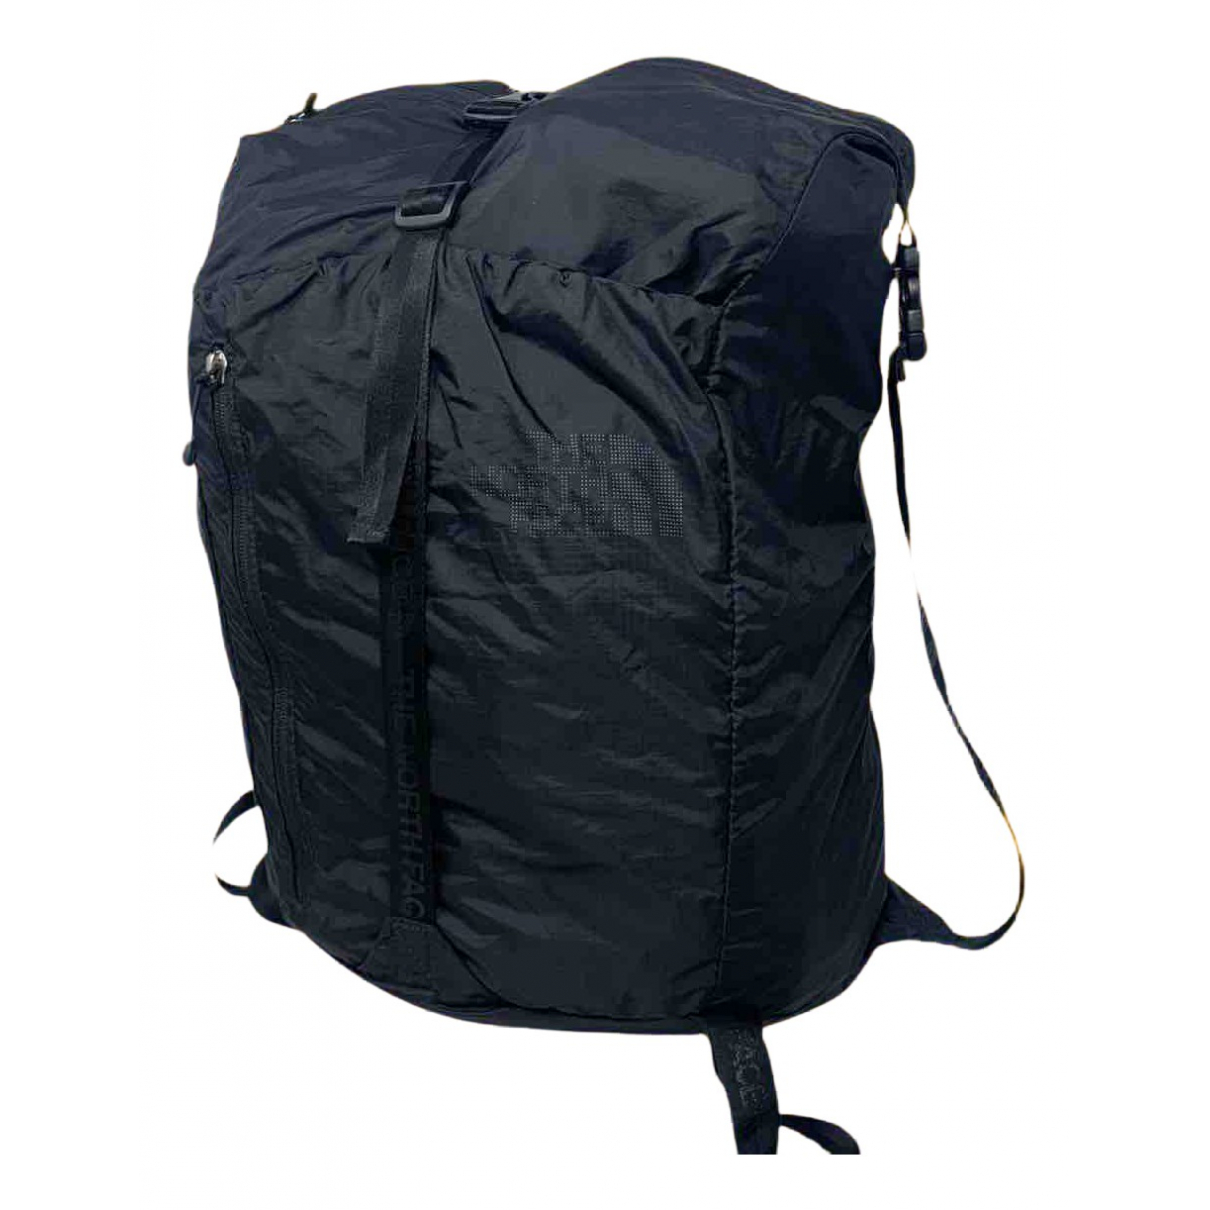 Mochila de Lona The North Face